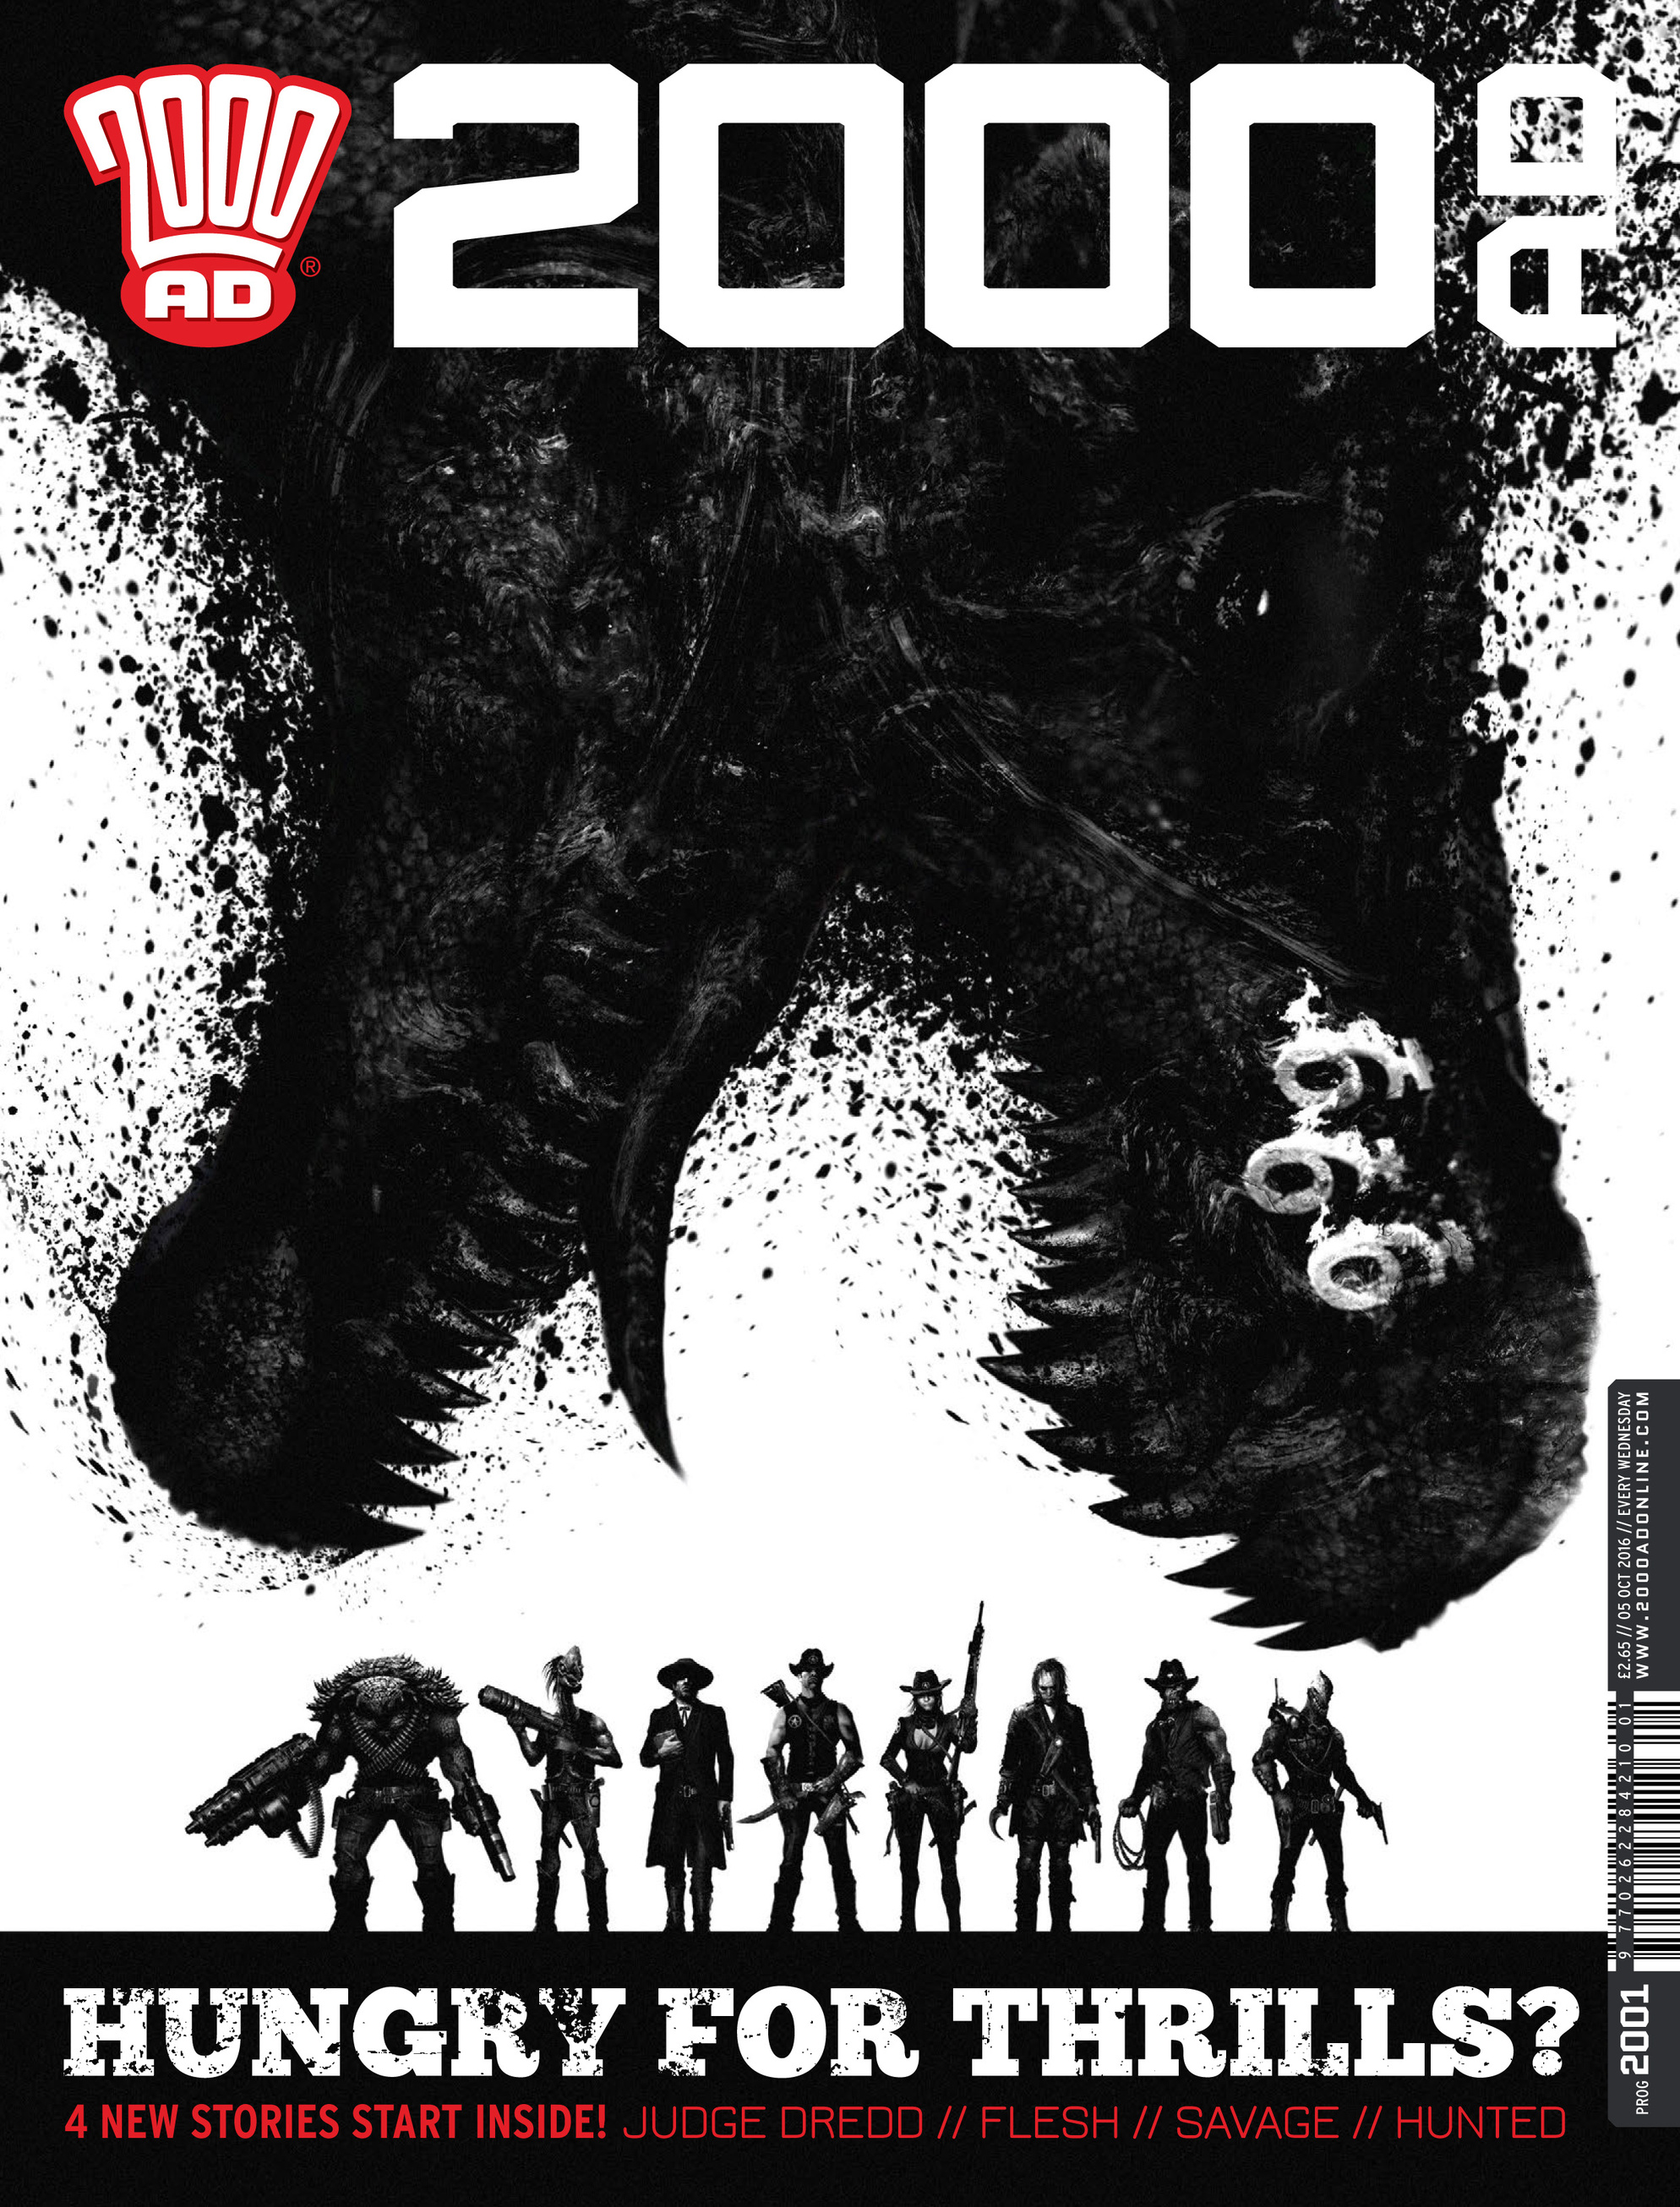 2000 AD 2001 Page 1